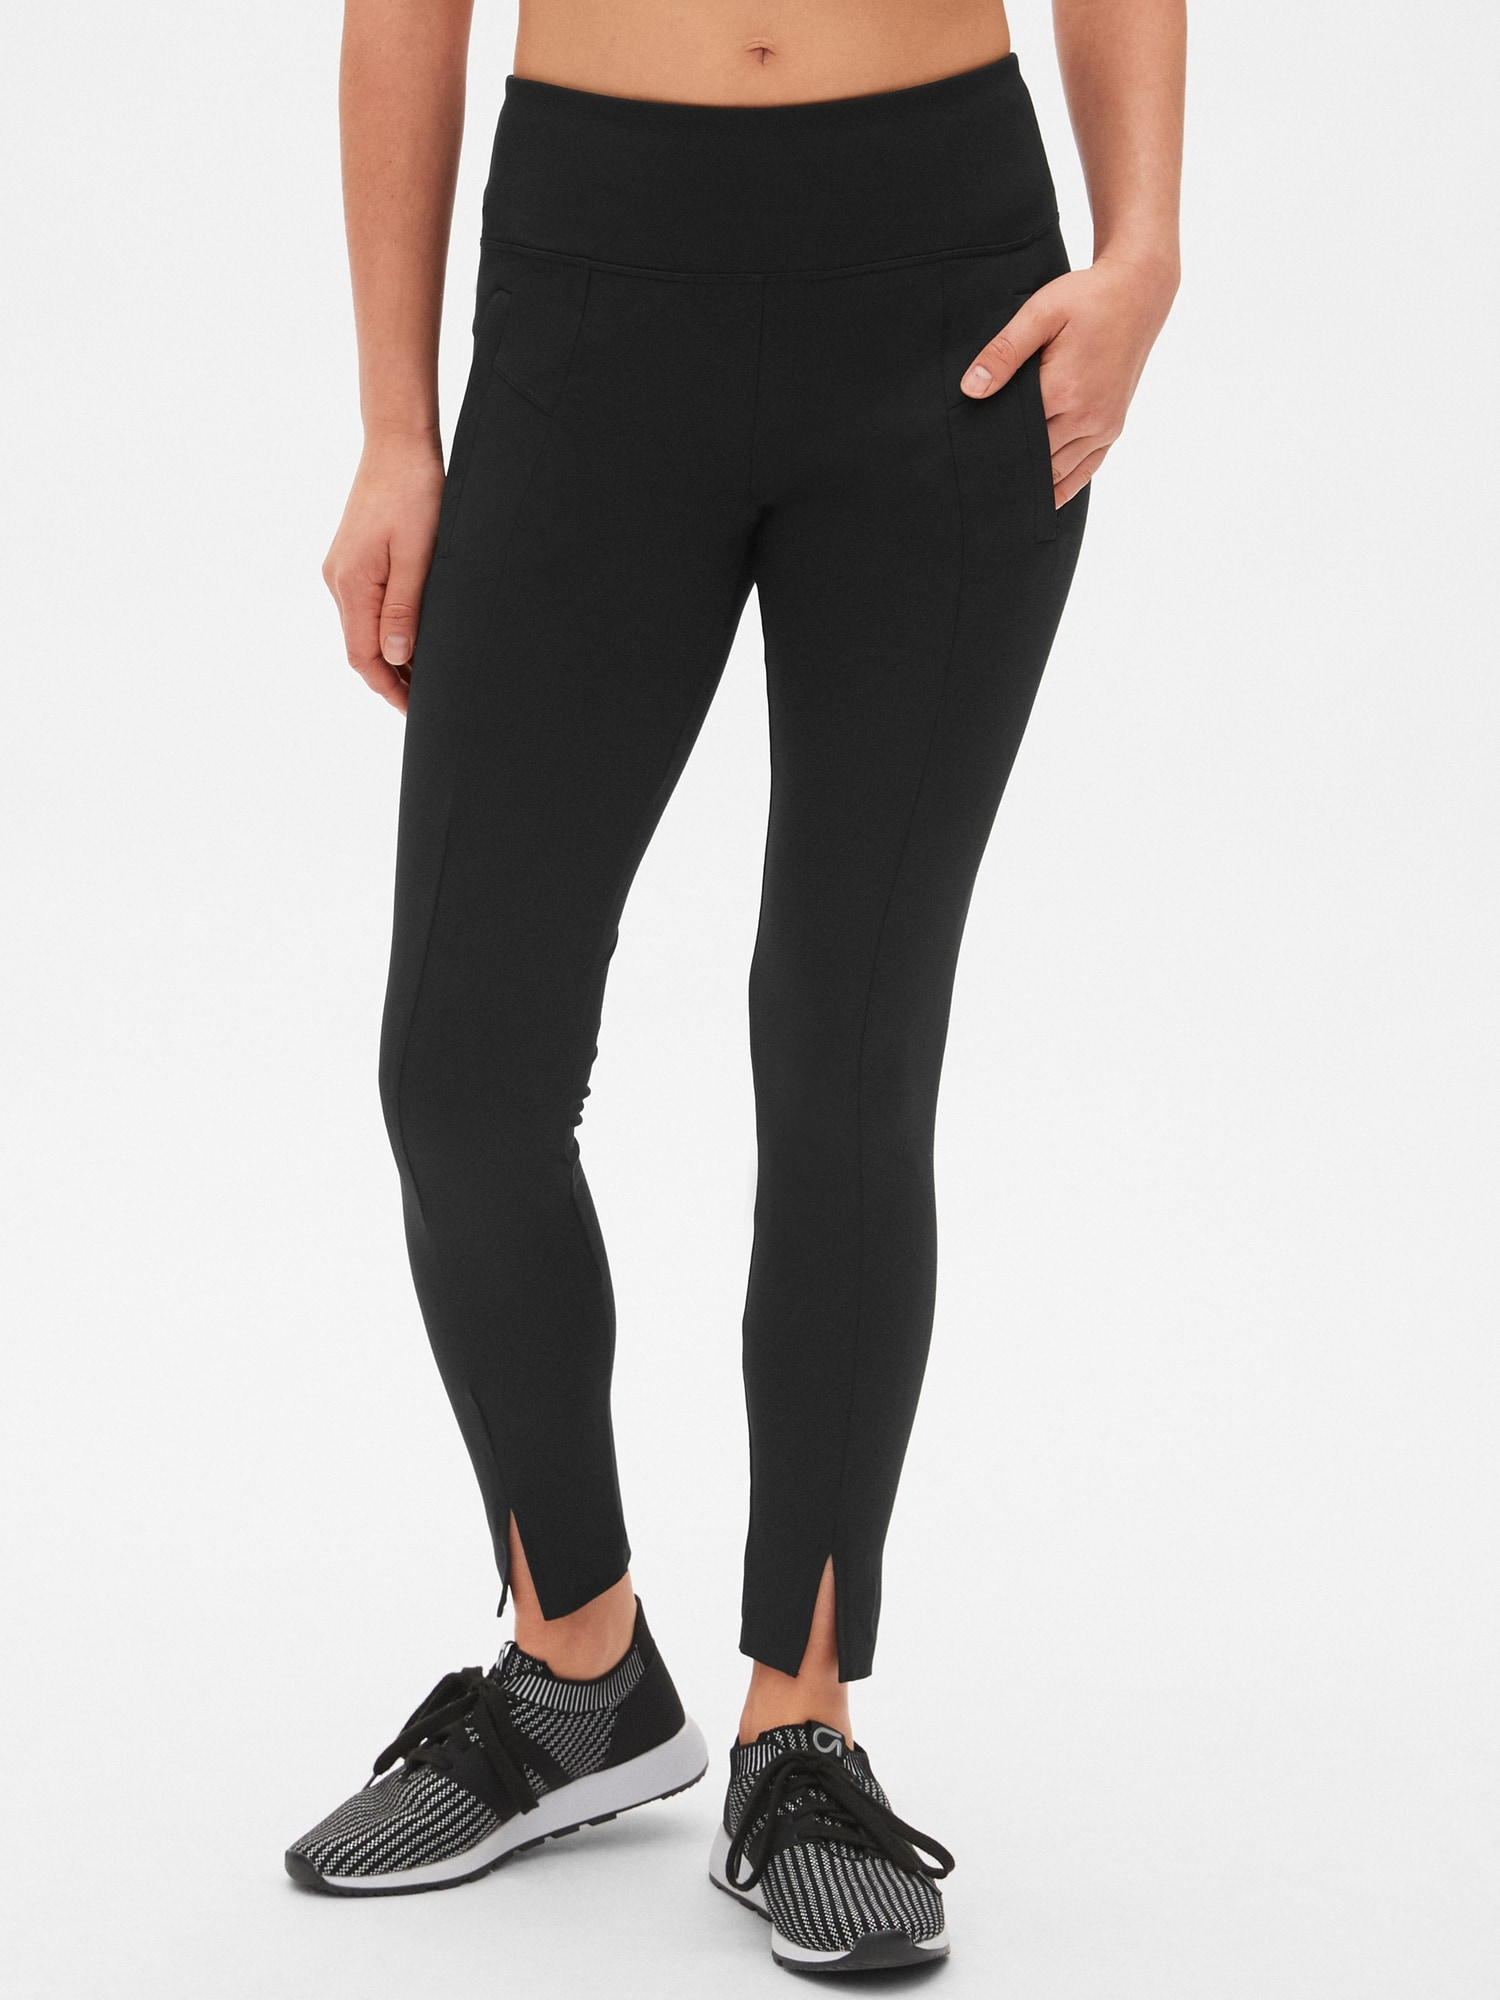 6b07bea174f08 GapFit Full Length City Leggings | Gap